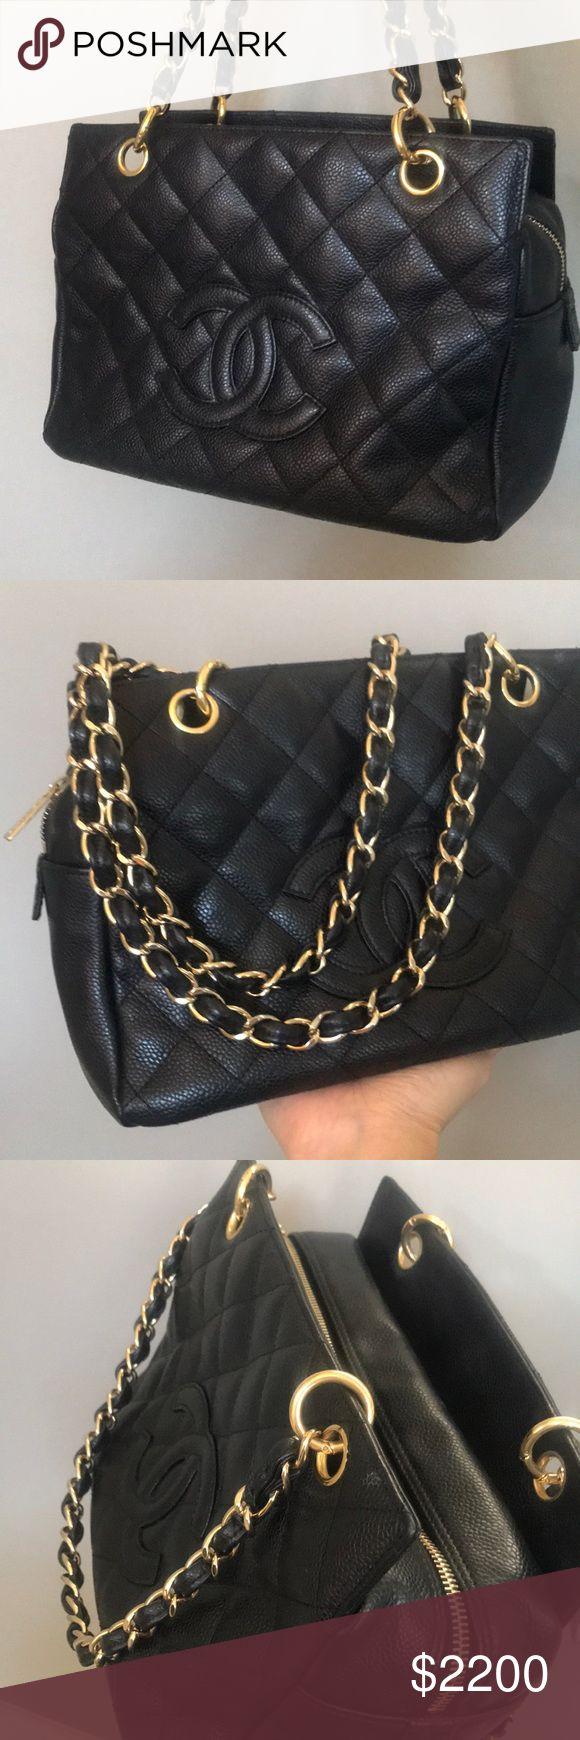 Authentic Chanel Bag Great Condition Authentic Chanel Bag Great Condition CHANEL Bags Mini Bags